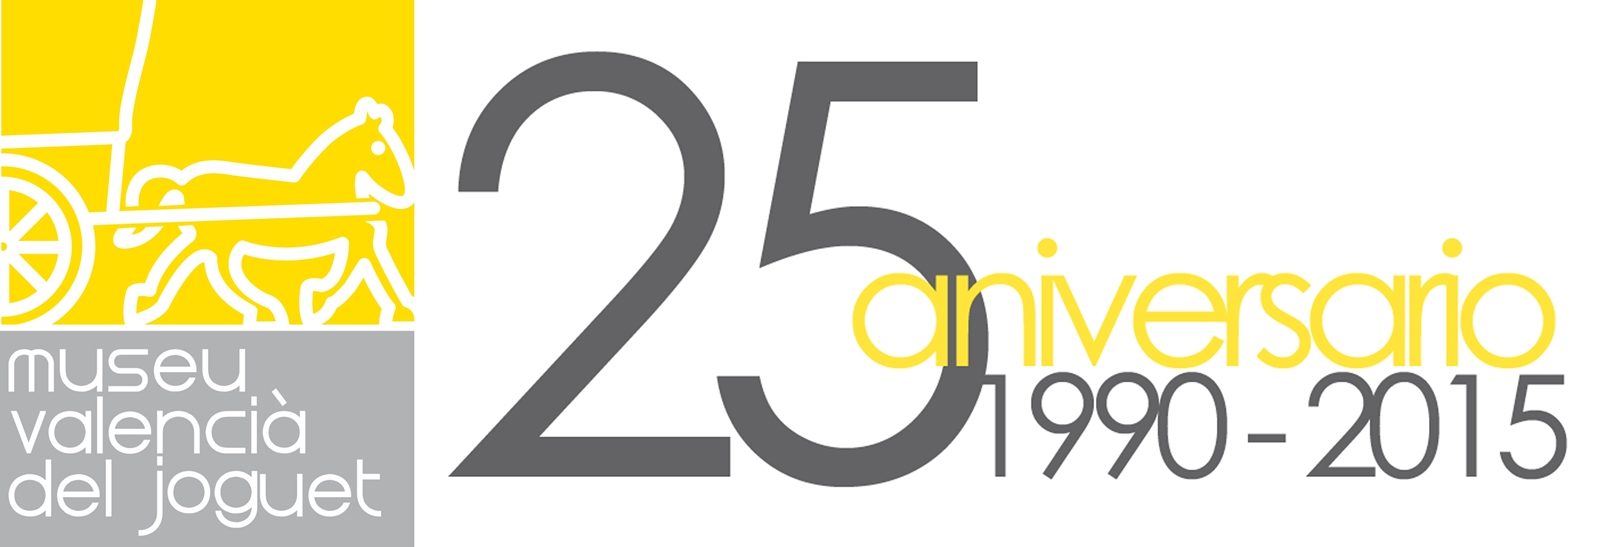 logo-25-aniversario-cast-copia-51